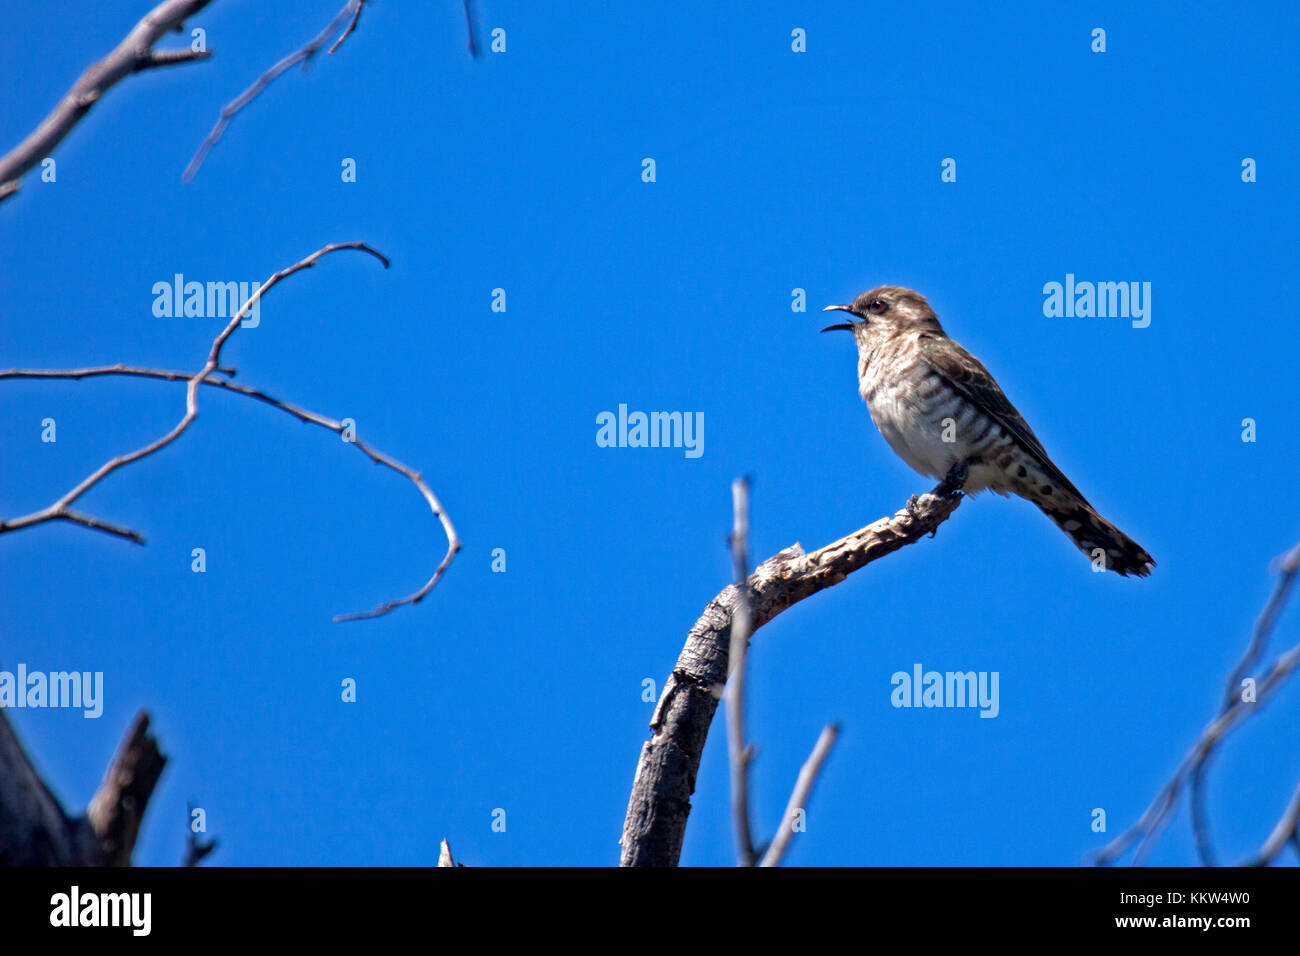 Horsefields bronze cuckoo perched on branch with lovely blue sky background in NSW Australia - Stock Image